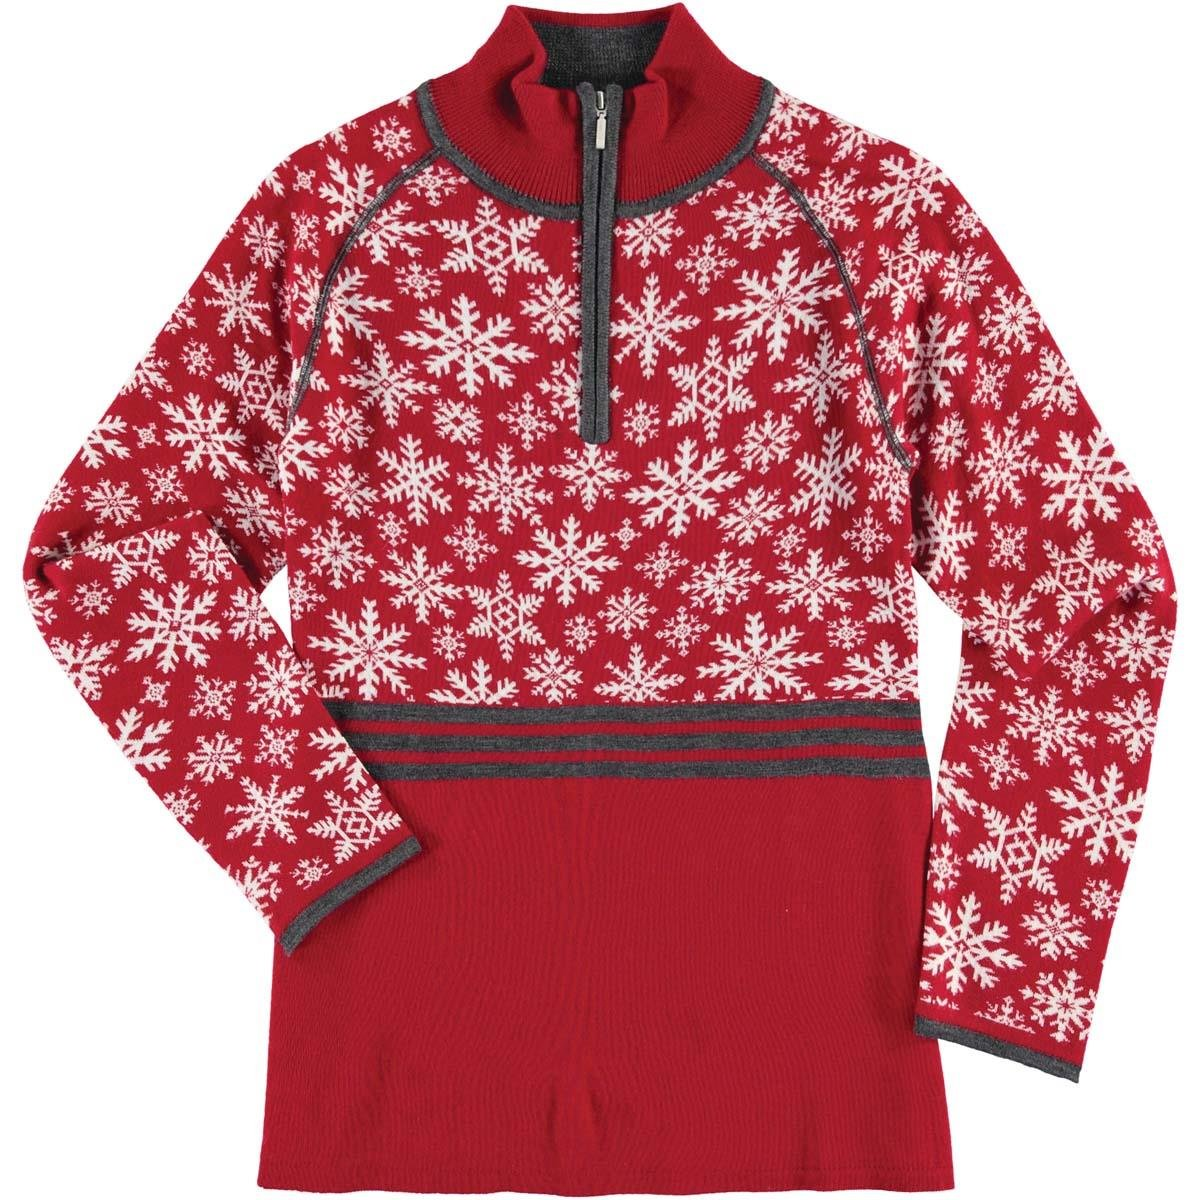 Krimson Klover Womens Eva Maria 1/4 Zip Pullover Sweater (Red / X-Large)